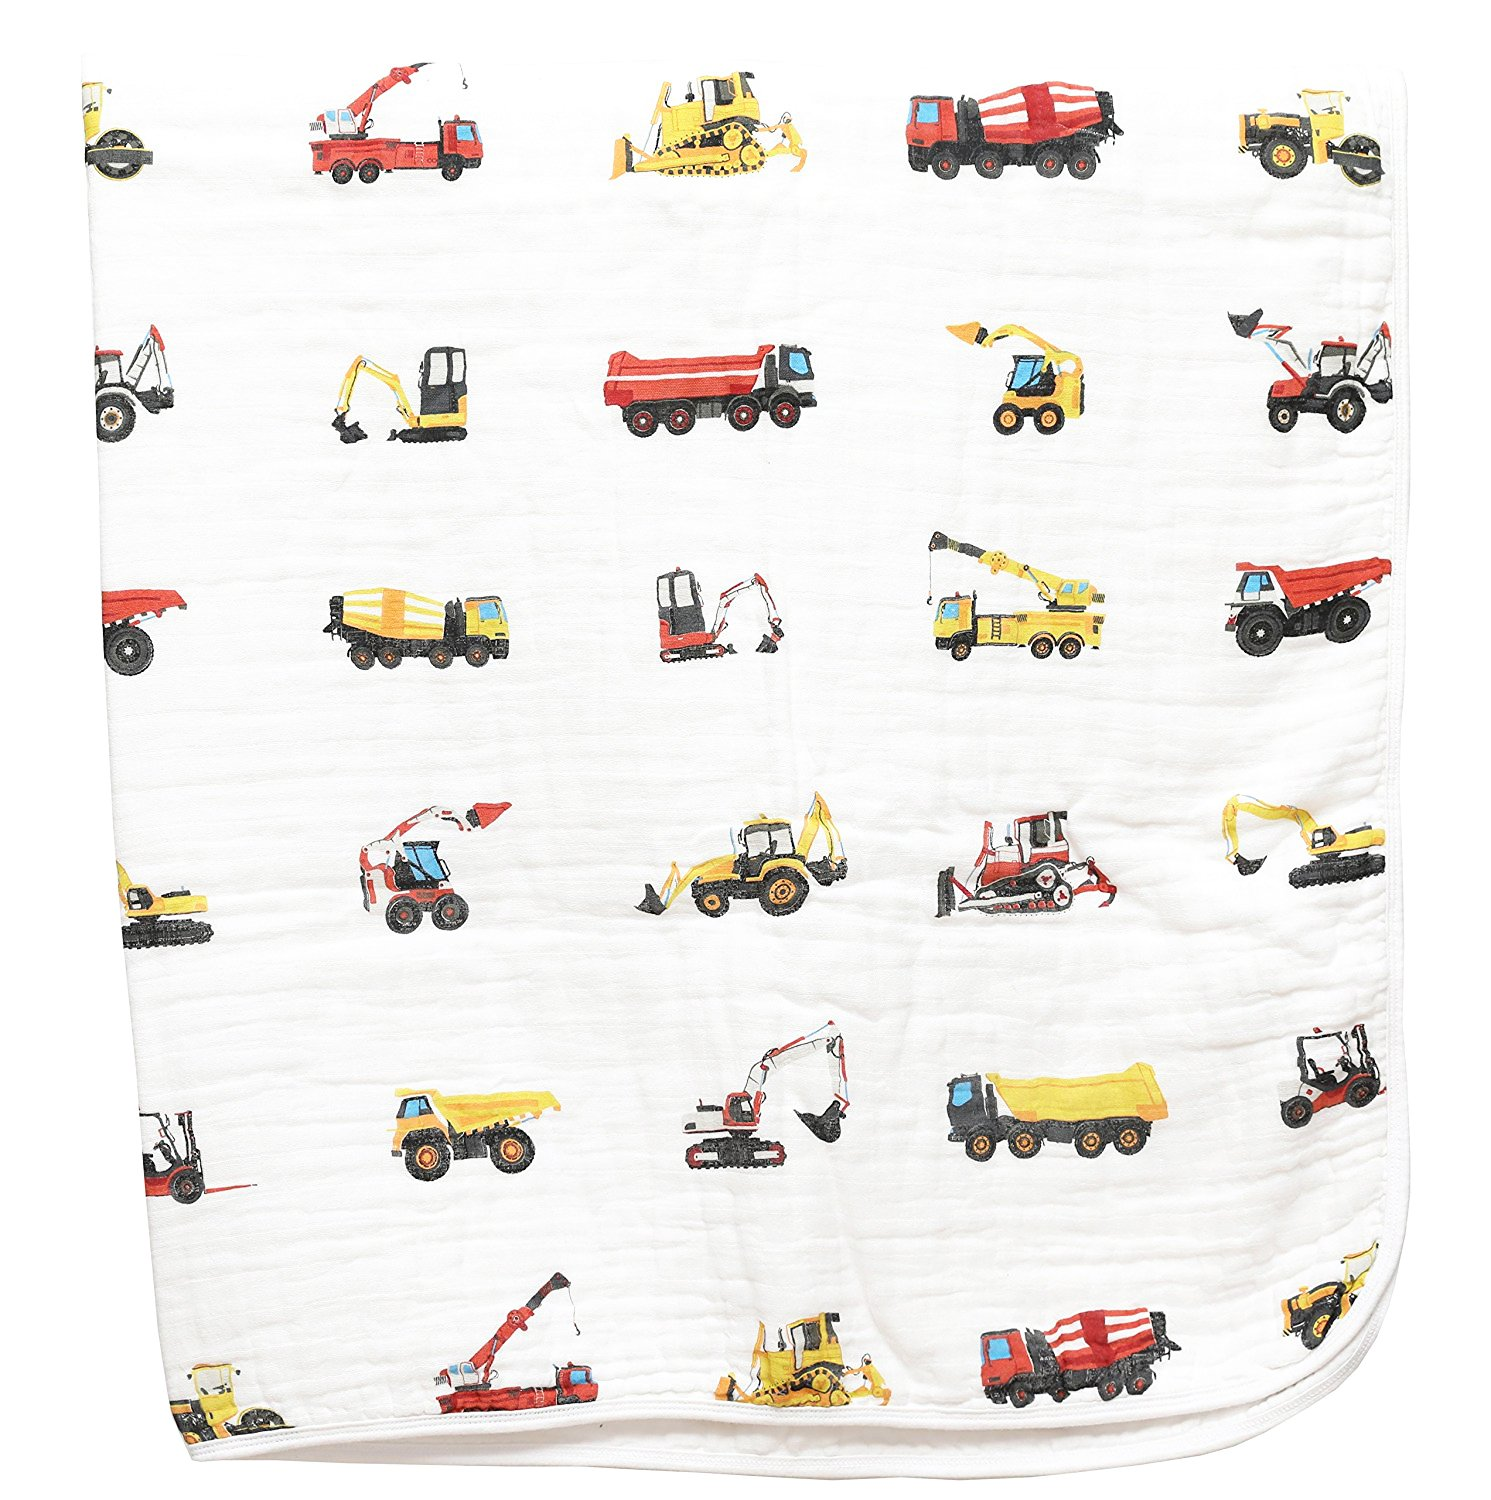 100% Organic Muslin Everything Blanket by ADDISON BELLE - Oversized 47 inches x 47 inches - Best Baby/Toddler Gift - Premium 4 Layer Muslin Blanket/Dream Blanket (Construction Trucks Print) by ADDISON BELLE